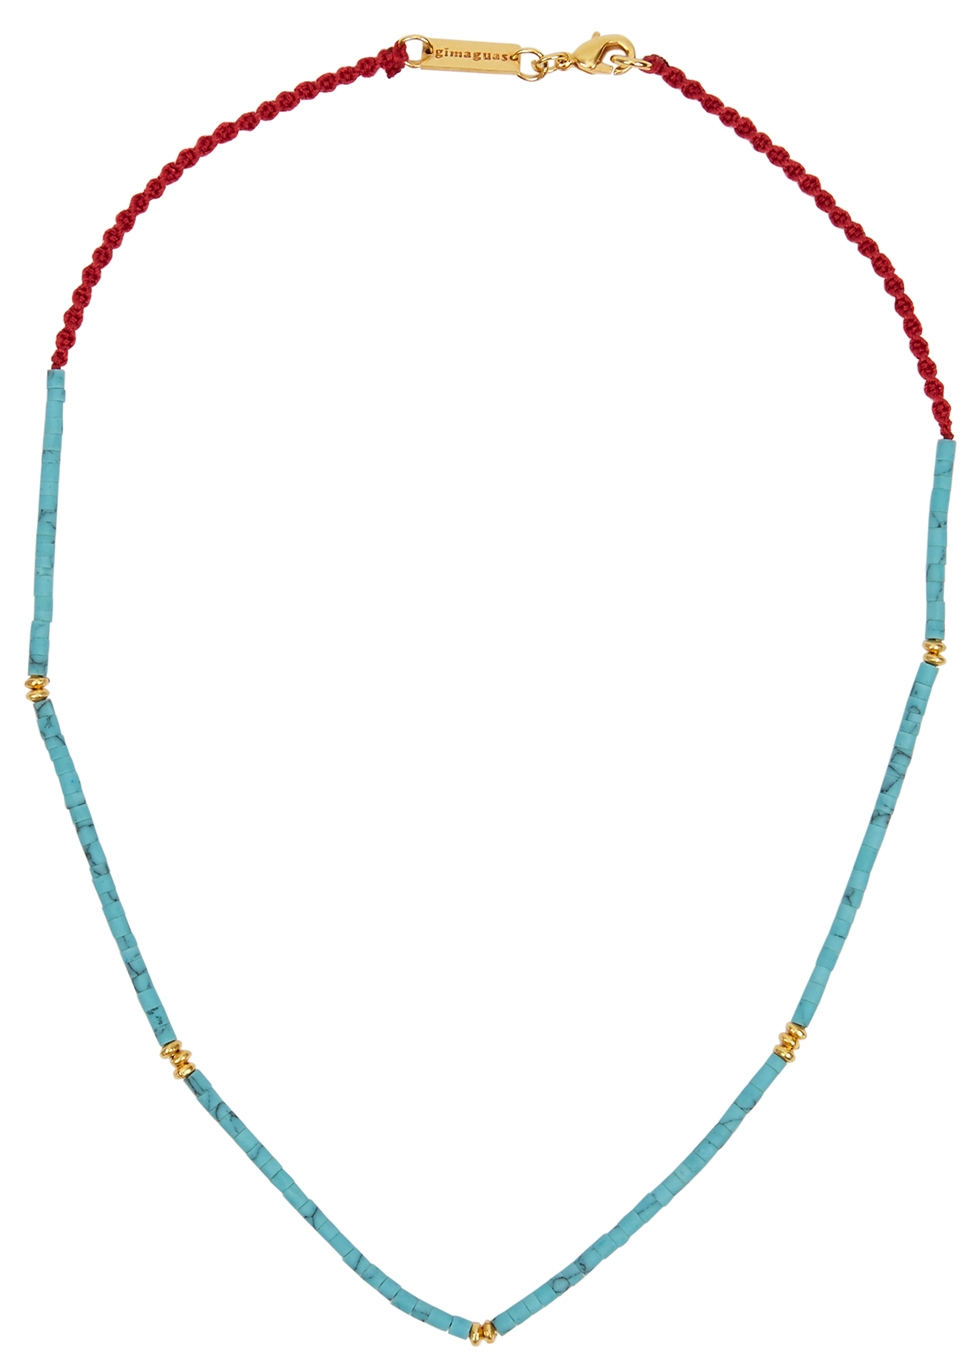 Little Turquoise beaded necklace